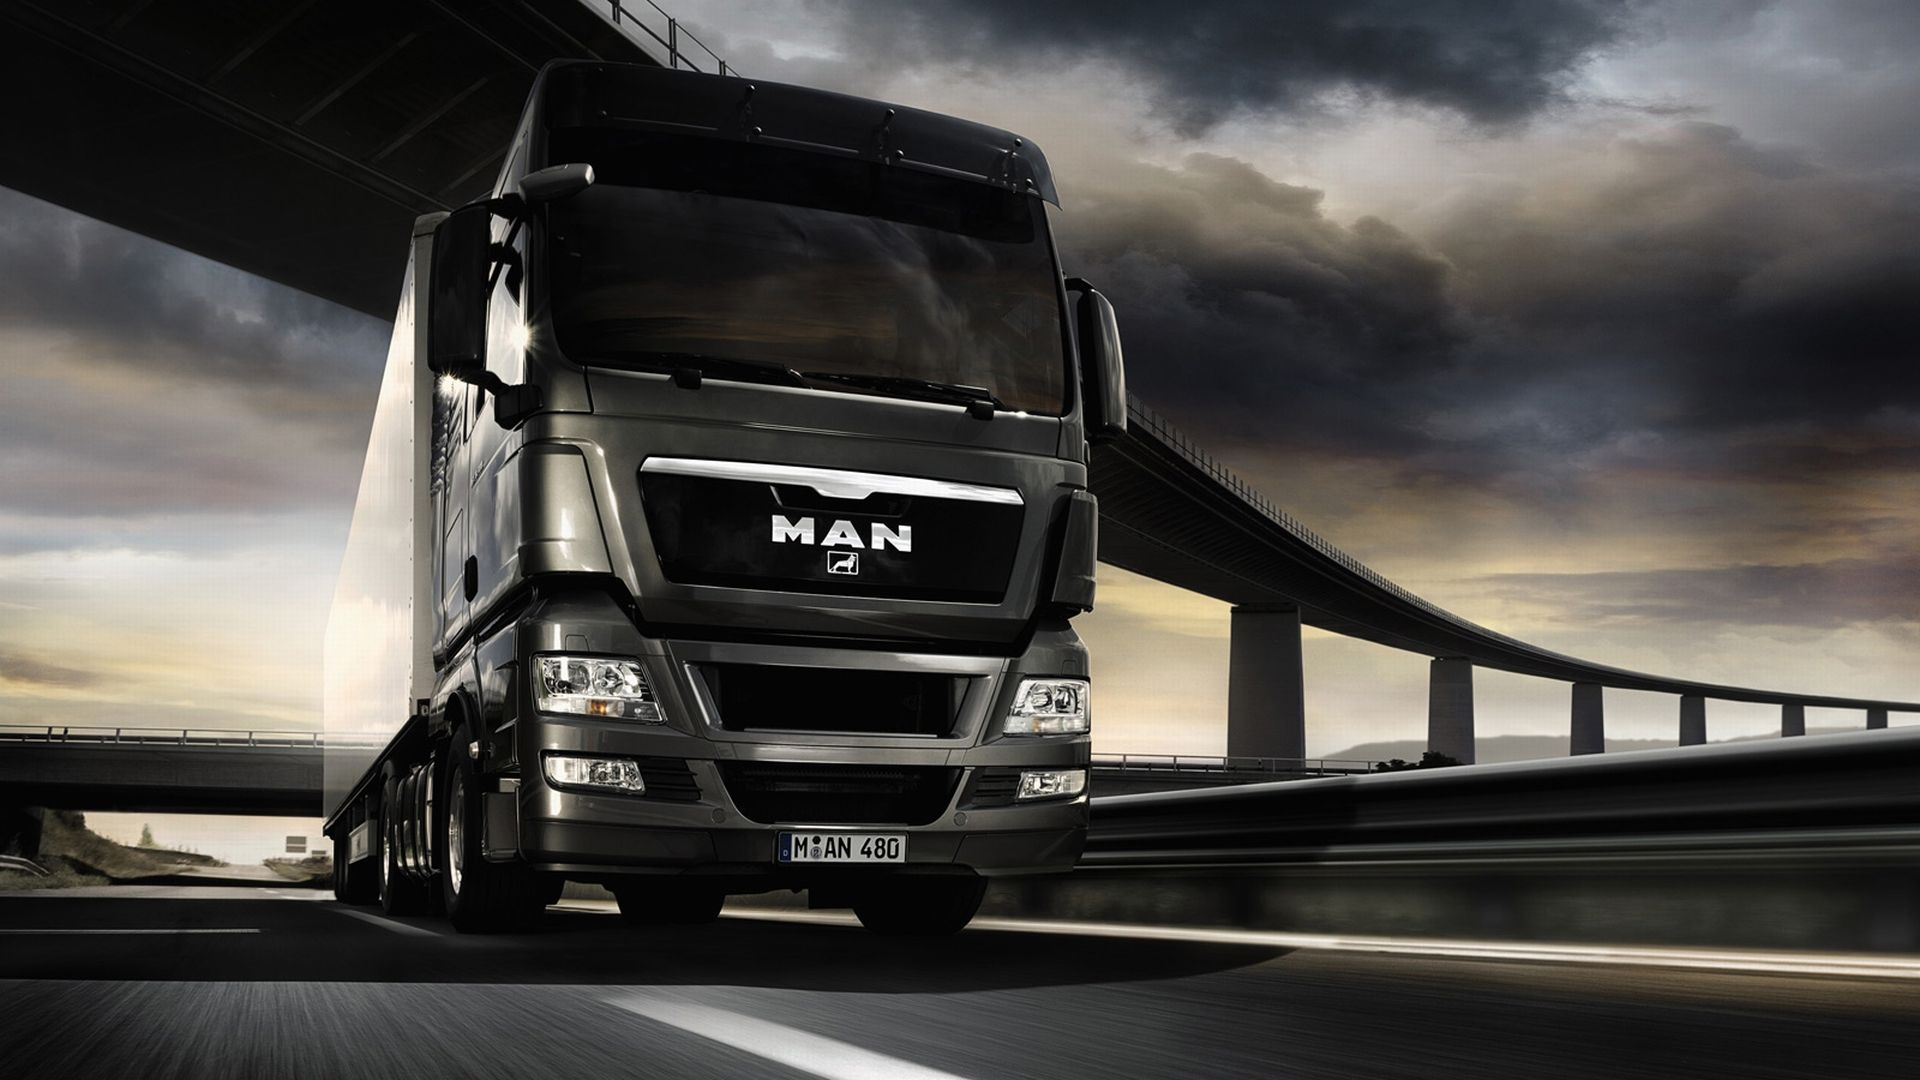 Volvo Truck Photos Download Volvo Truck Wallpapers Download Free